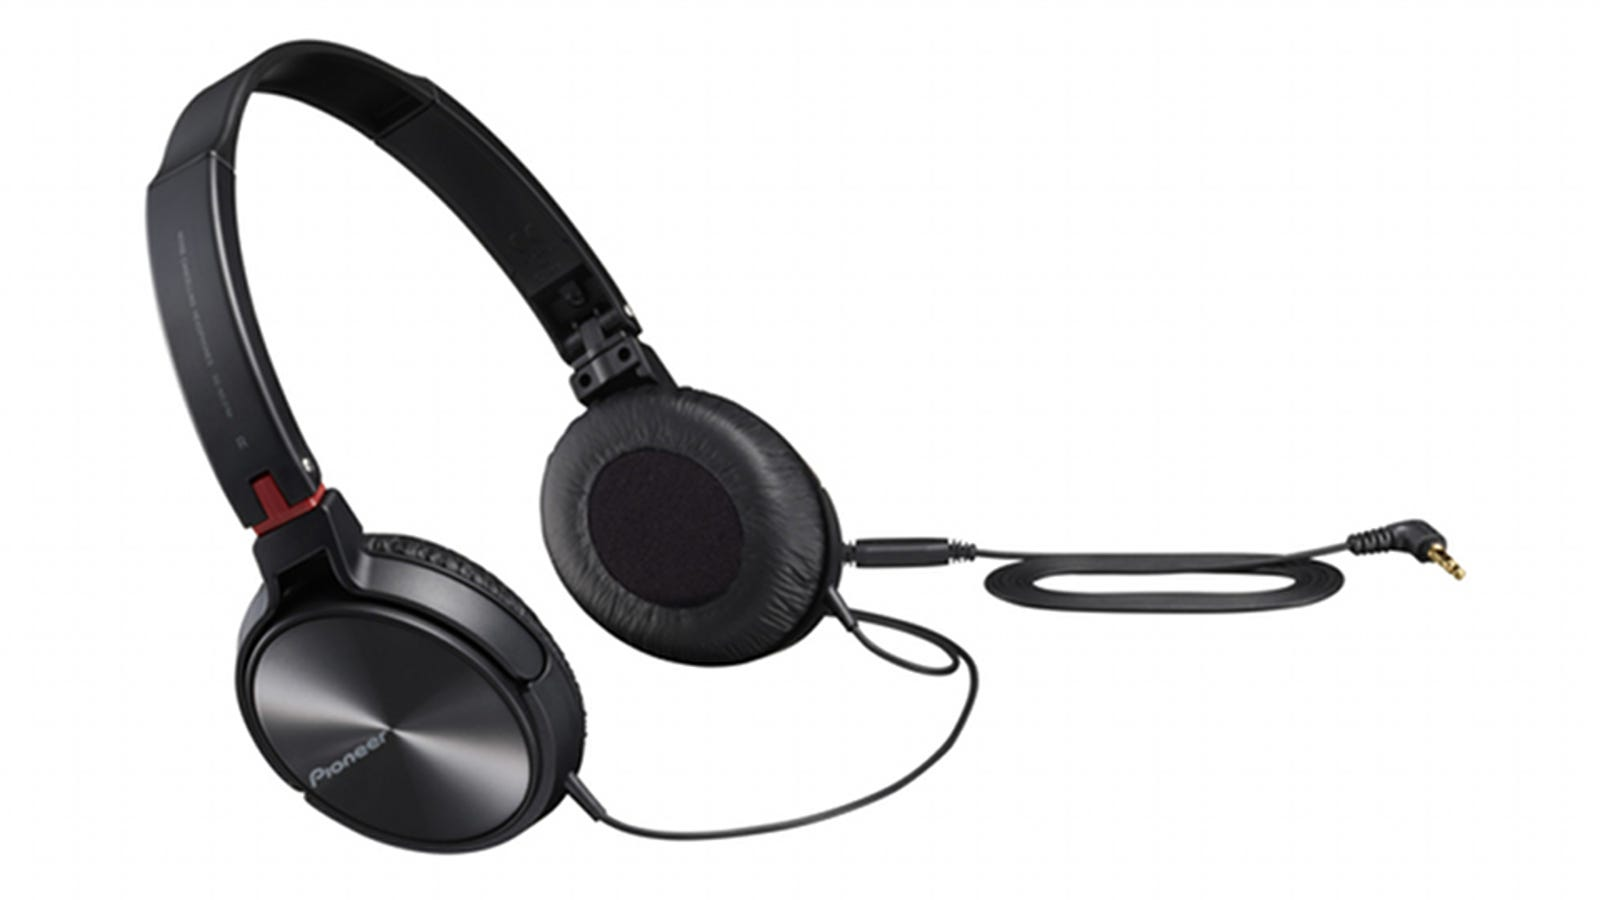 Pioneer's Gorgeous New Headphones Pack Up and Go With You Anywhere